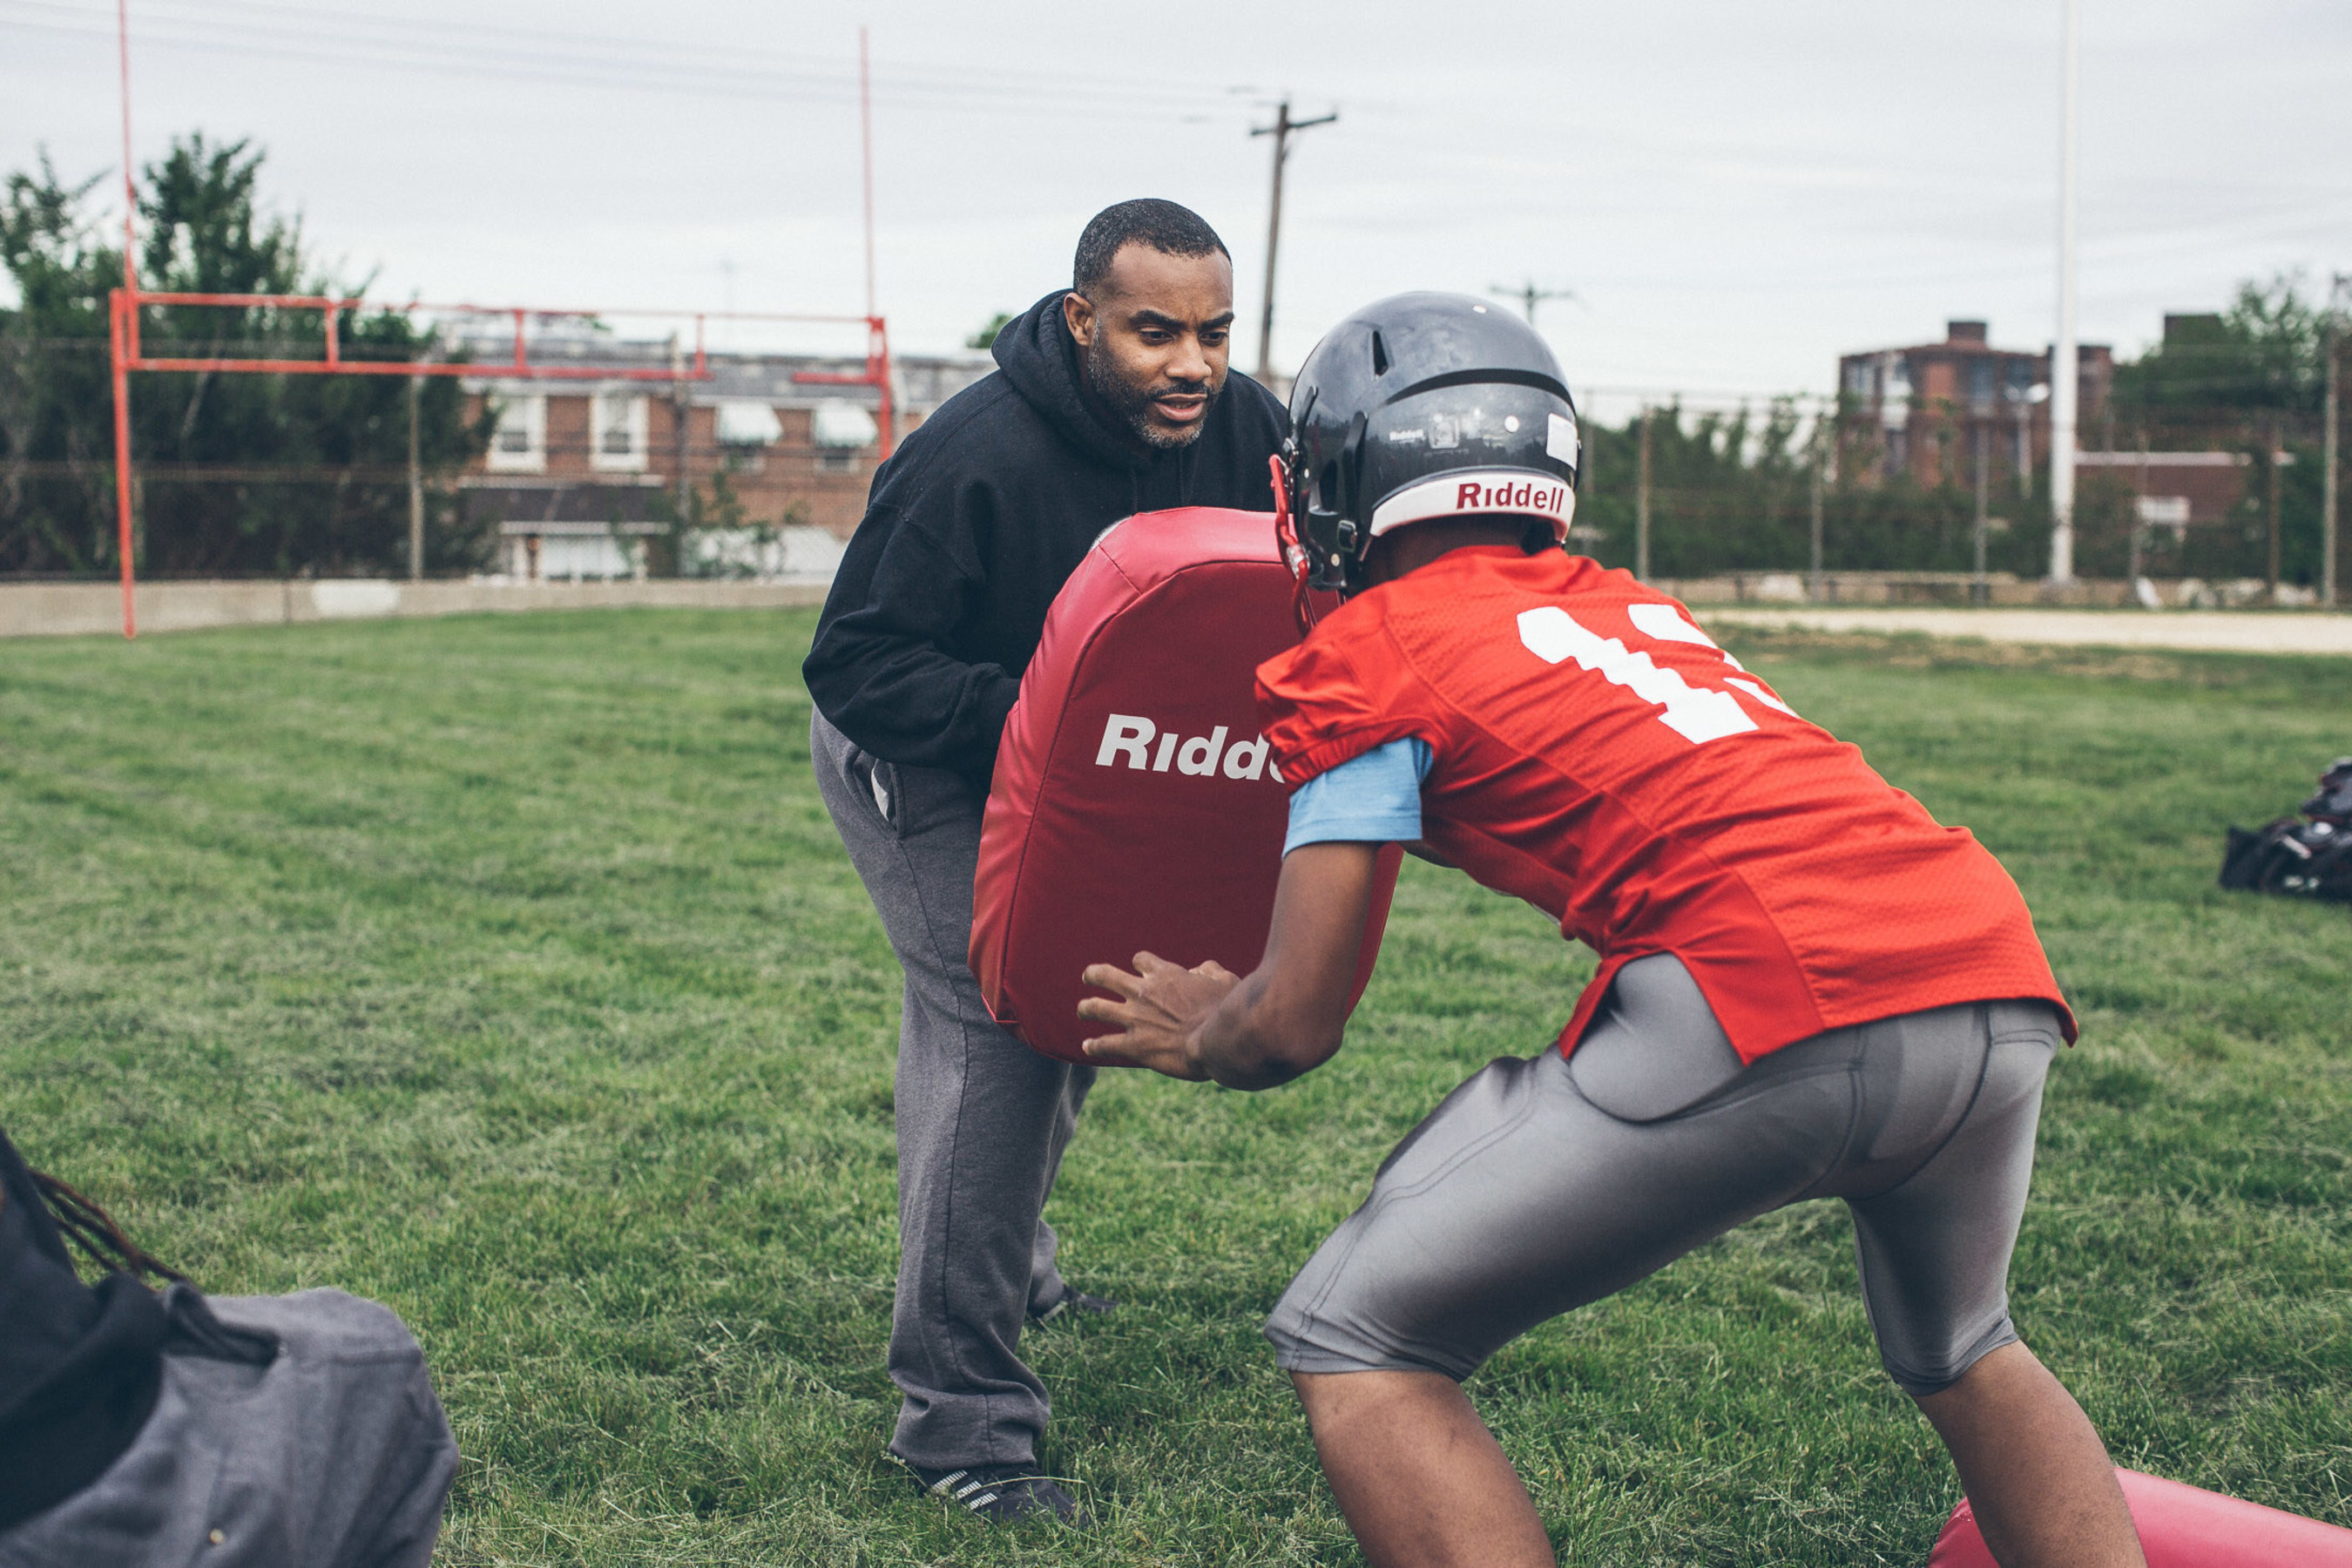 Juniata Thundercats coach and co-founder Lee Taggart teaches proper blocking technique as his players try out new equipment donated to the program as part of Riddell's Smarter Football program.